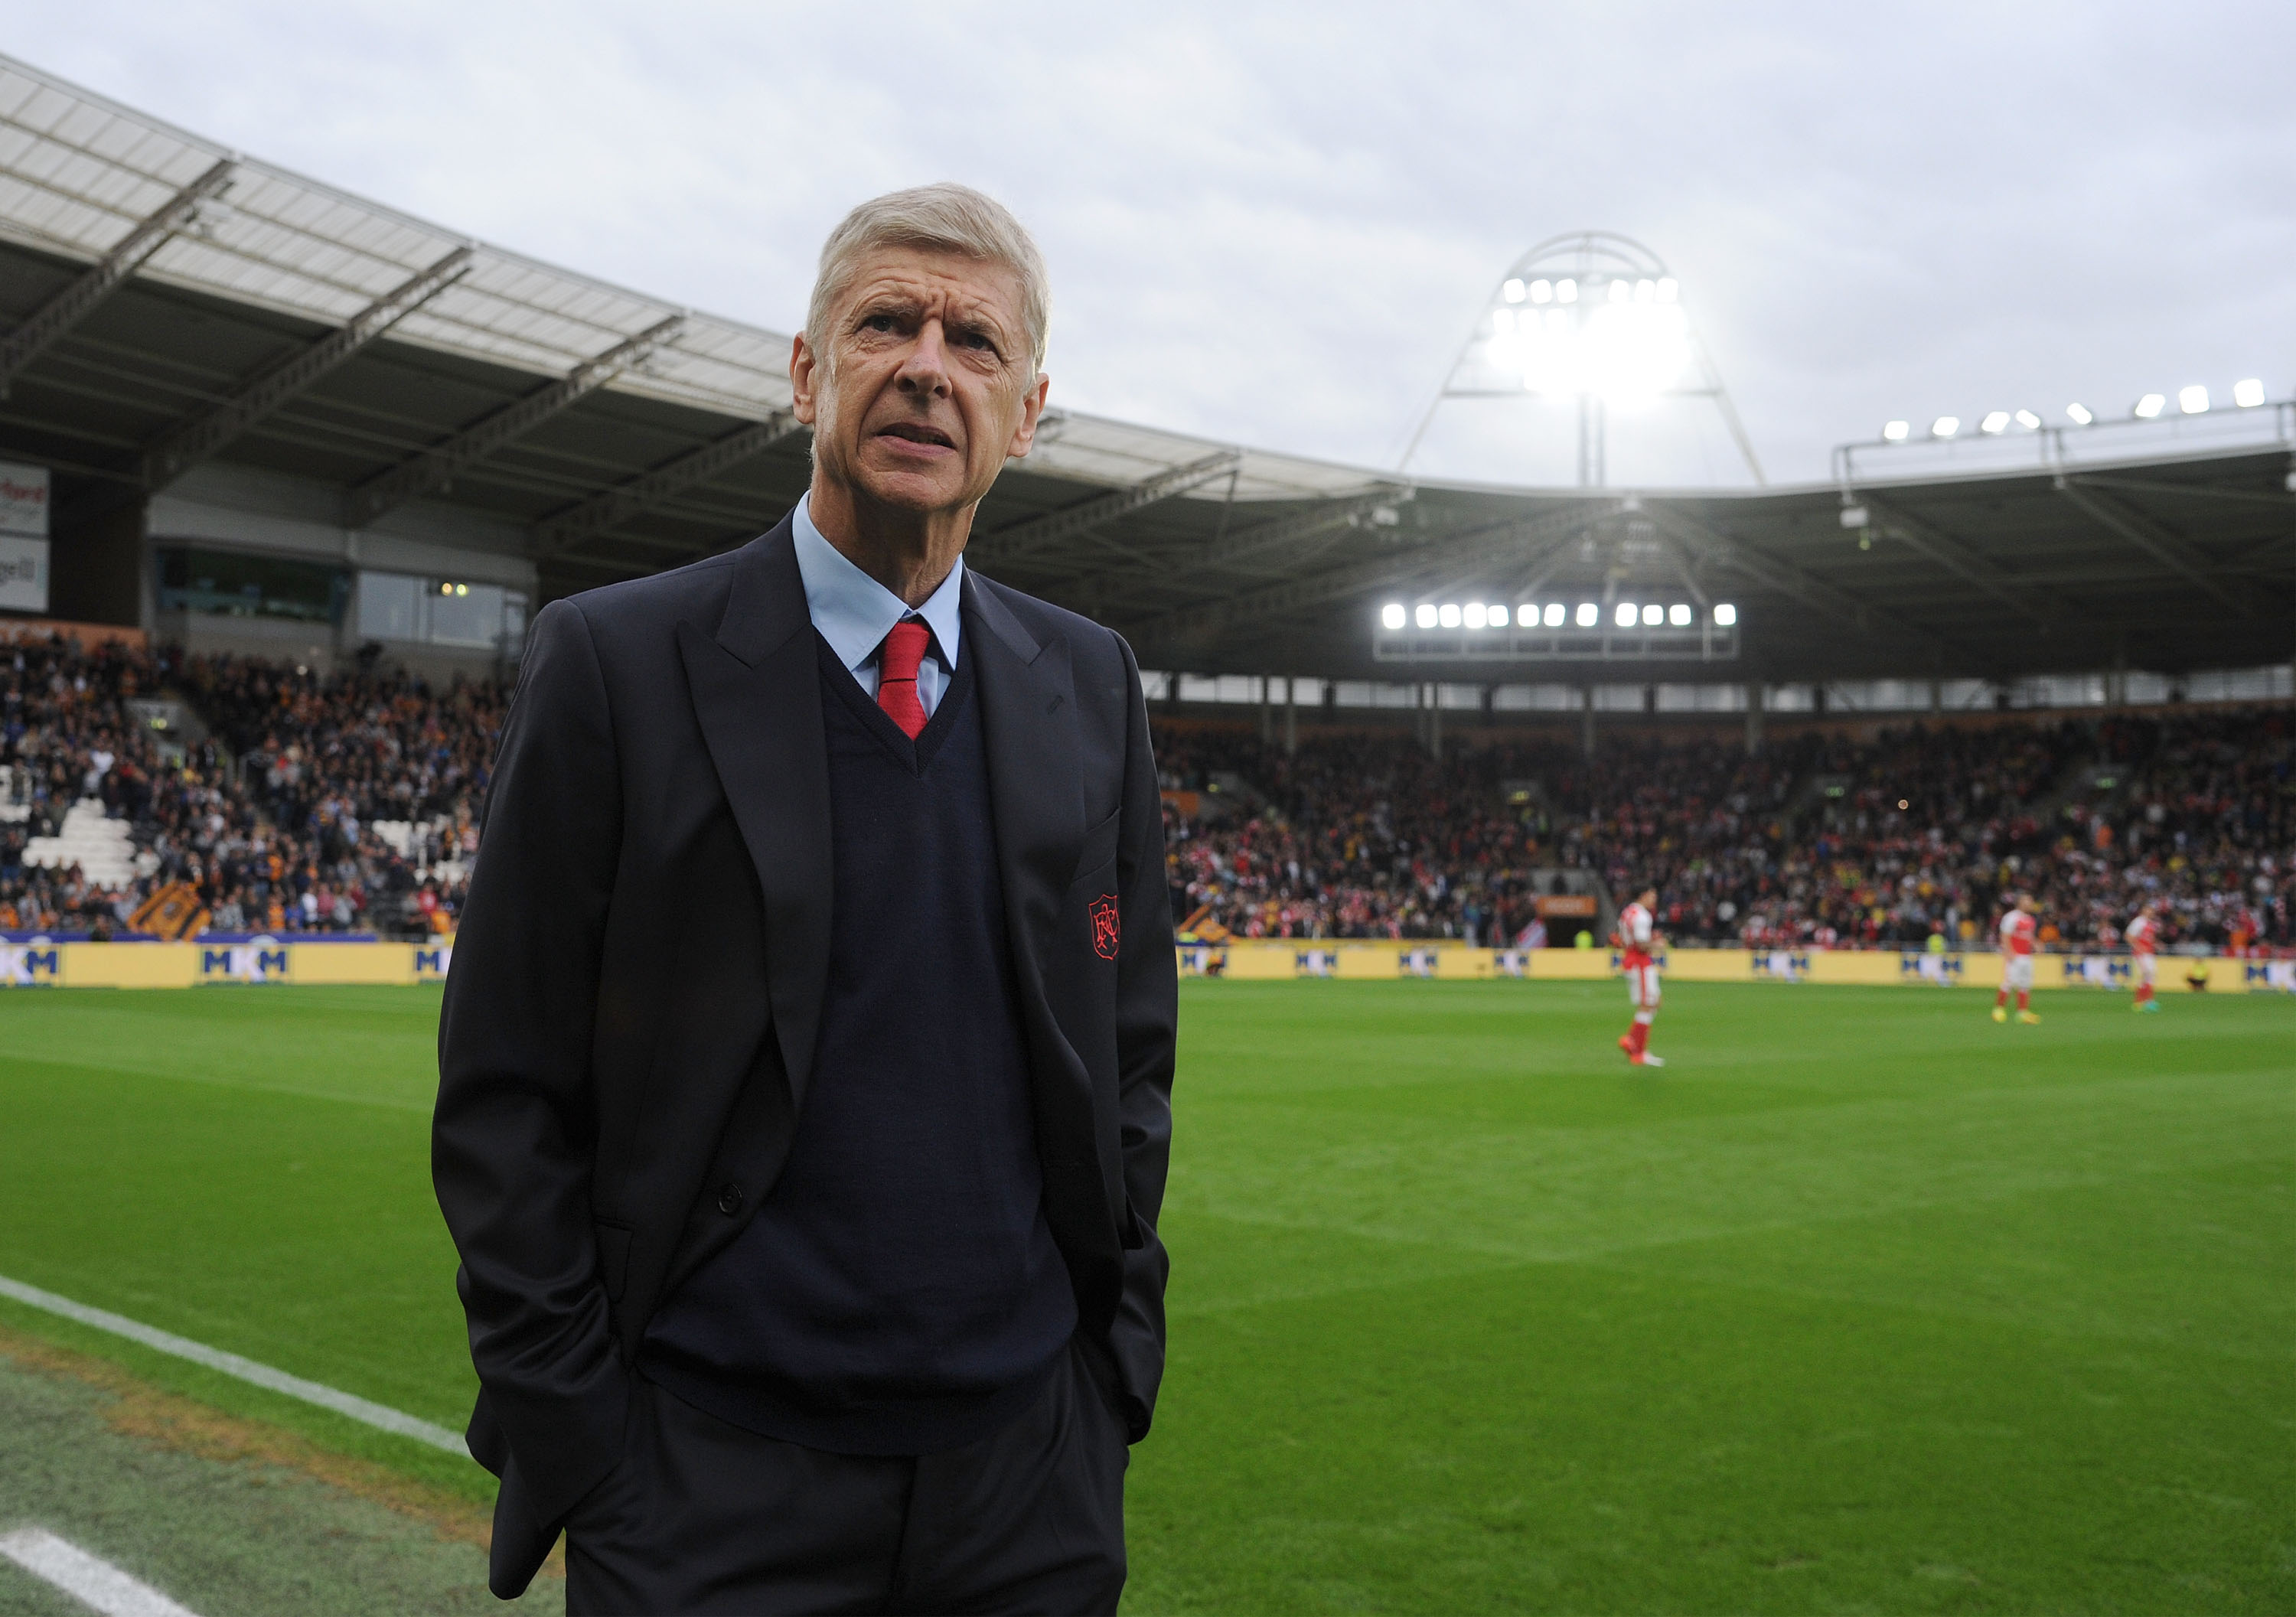 Arsenal legend Gilberto Silva warns fans about difficulty of replacing Arsene Wenger